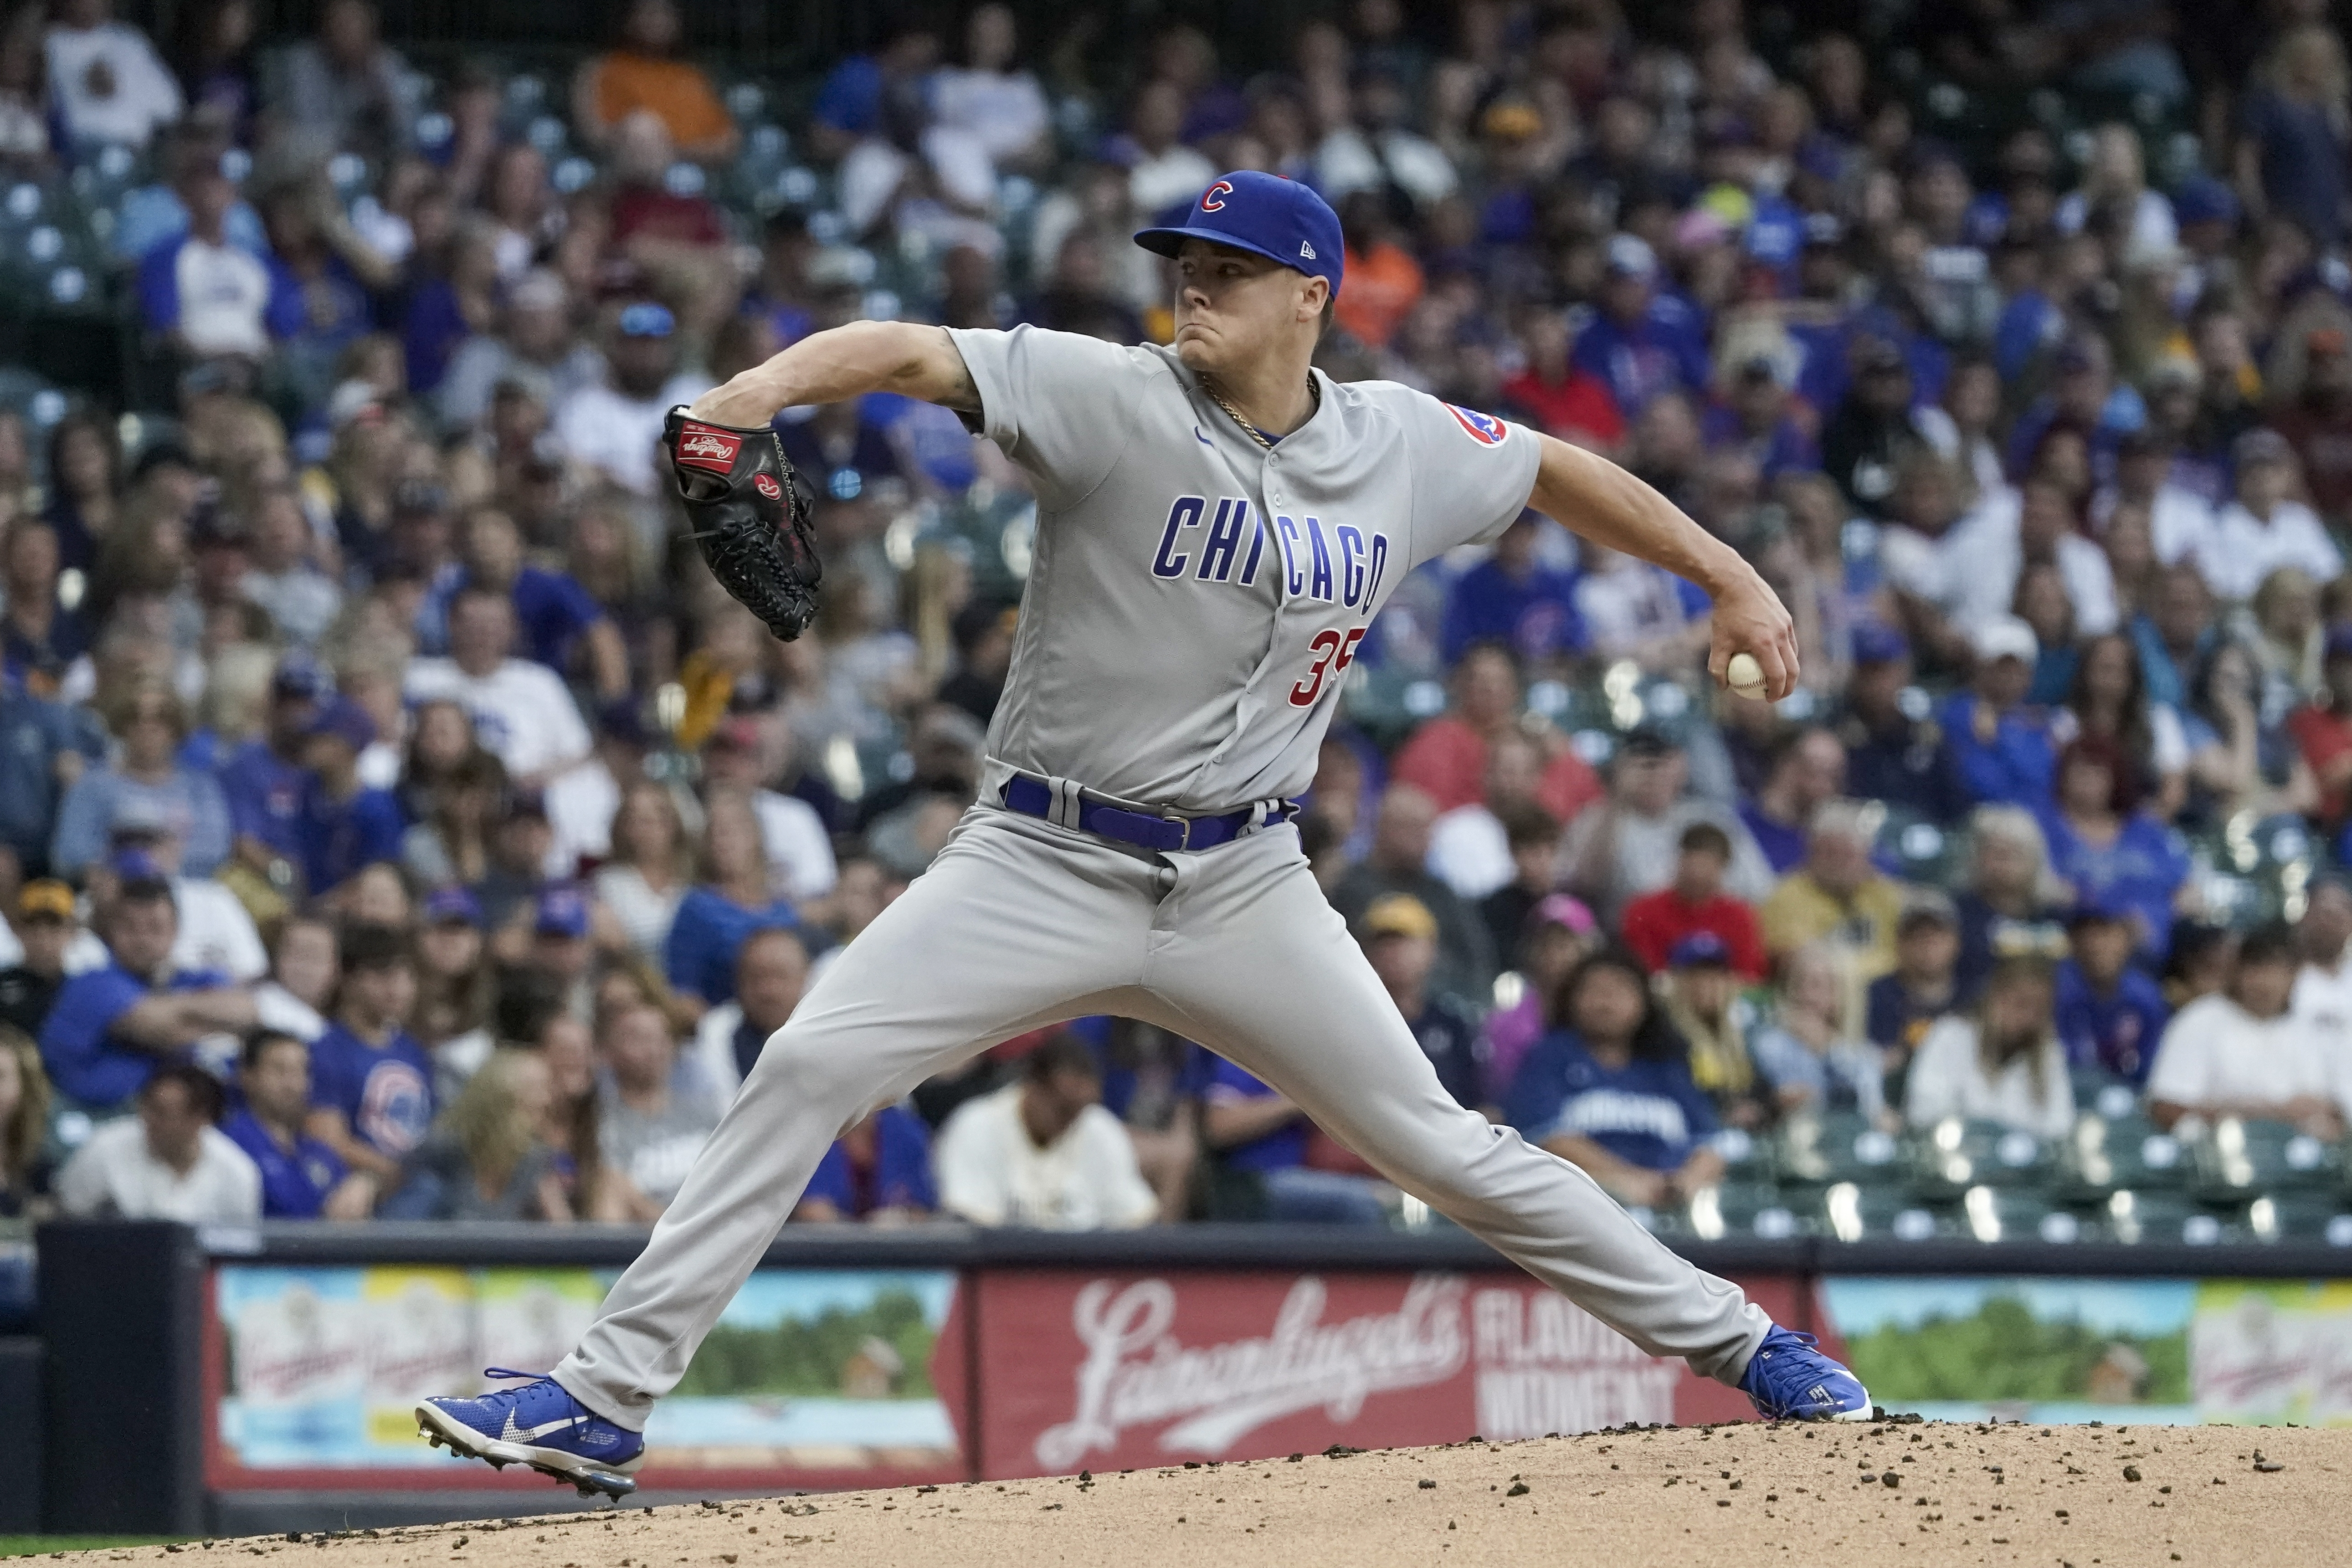 Chicago Cubs starting pitcher Justin Steele throws during the first inning of a baseball game against the Milwaukee Brewers Saturday, Sept. 18, 2021, in Milwaukee. (AP Photo/Morry Gash) ORG XMIT: WIMG107